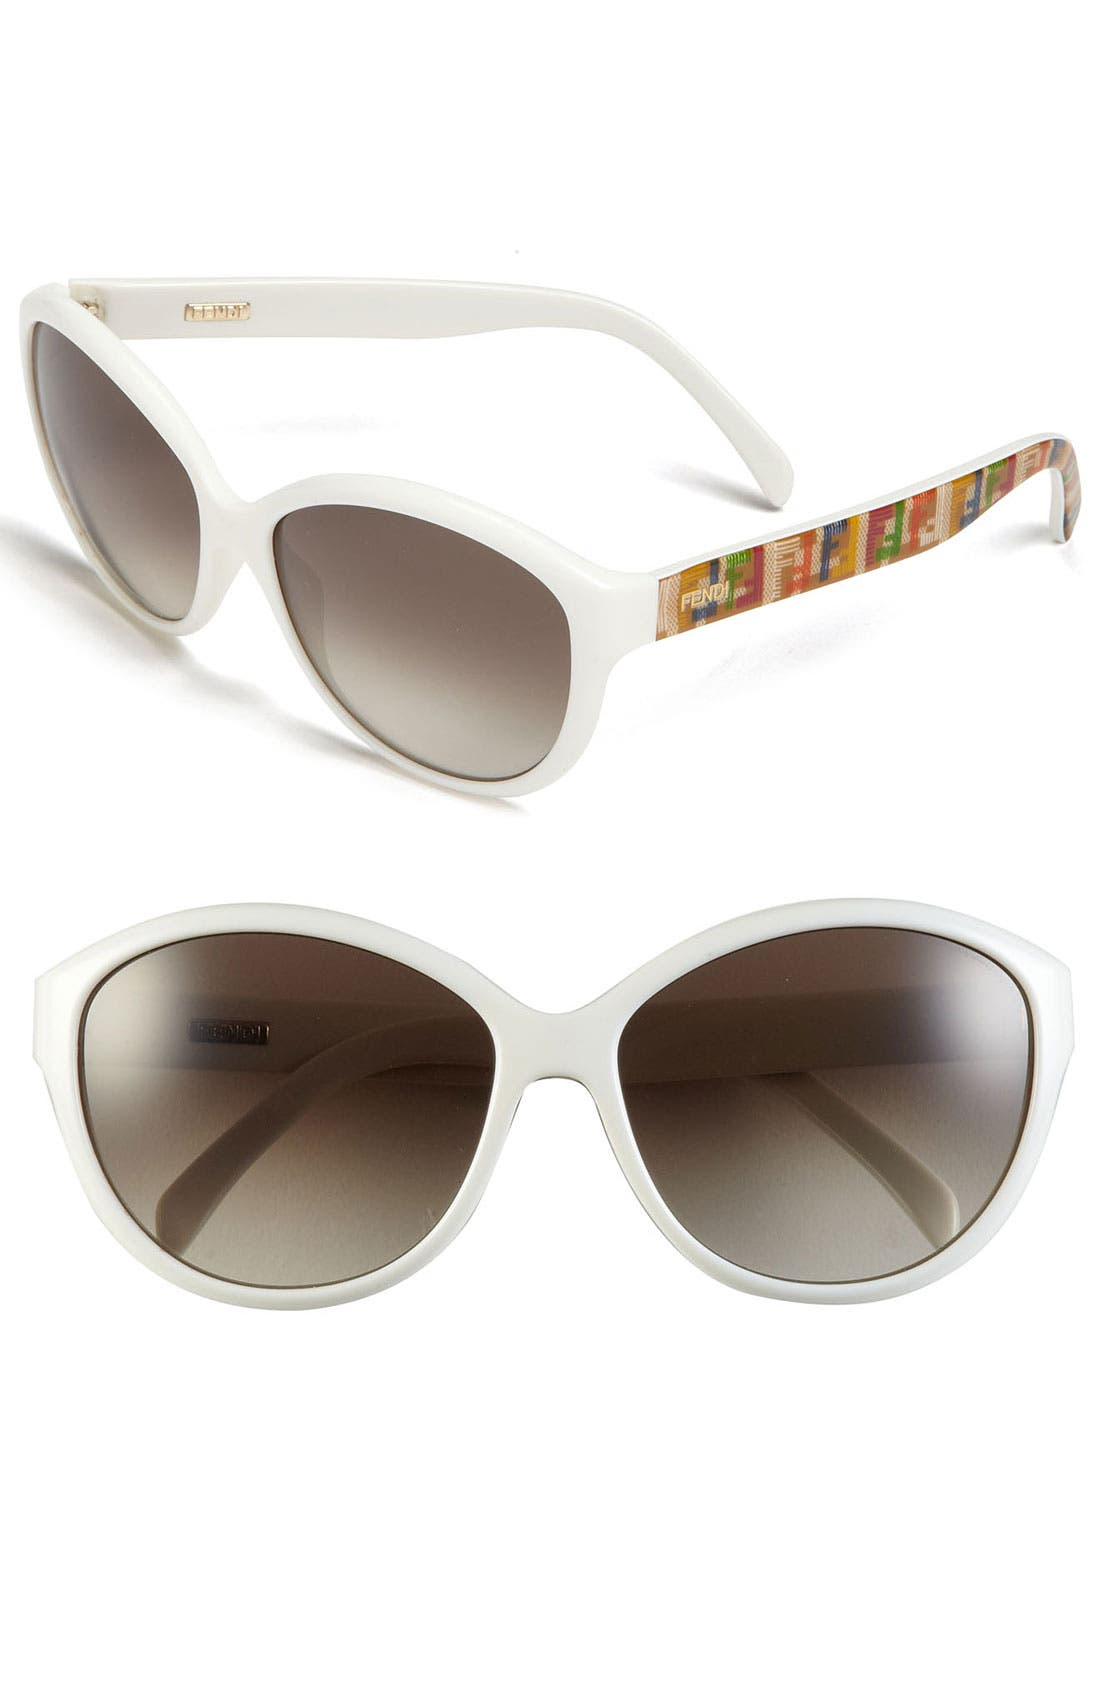 Alternate Image 1 Selected - Fendi 'Technicolor' 58mm Sunglasses